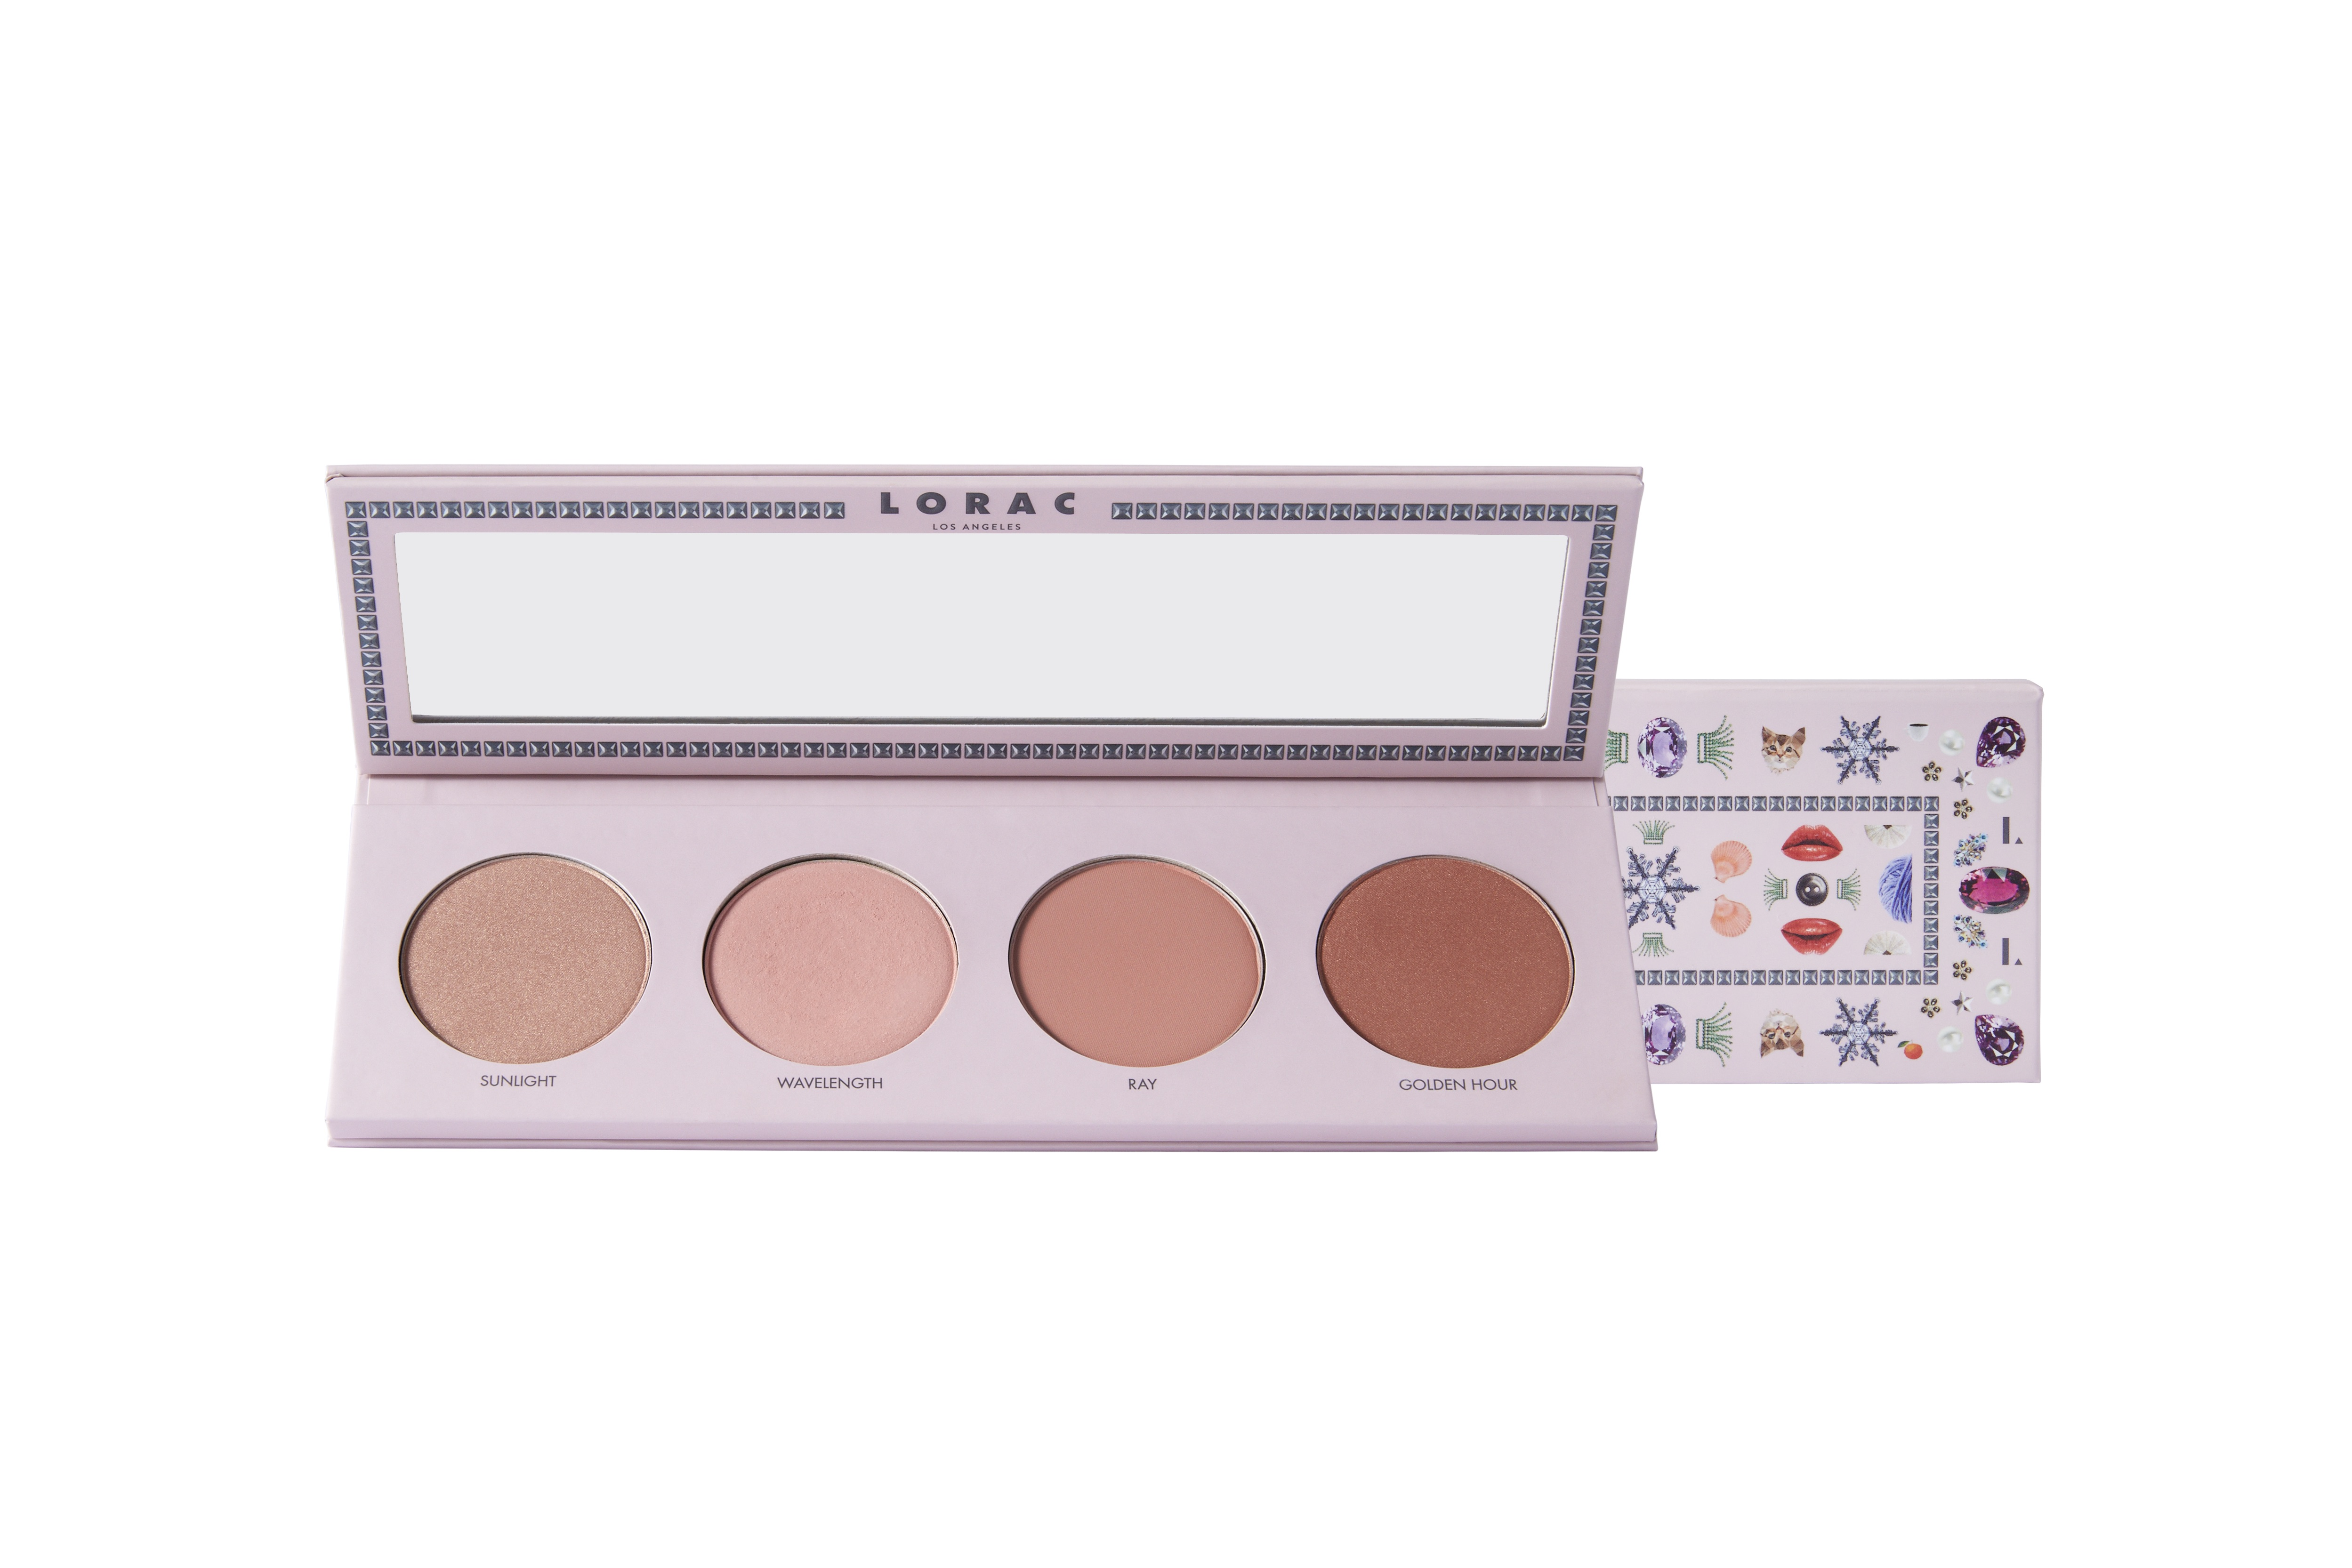 California Dreaming Collection by LORAC